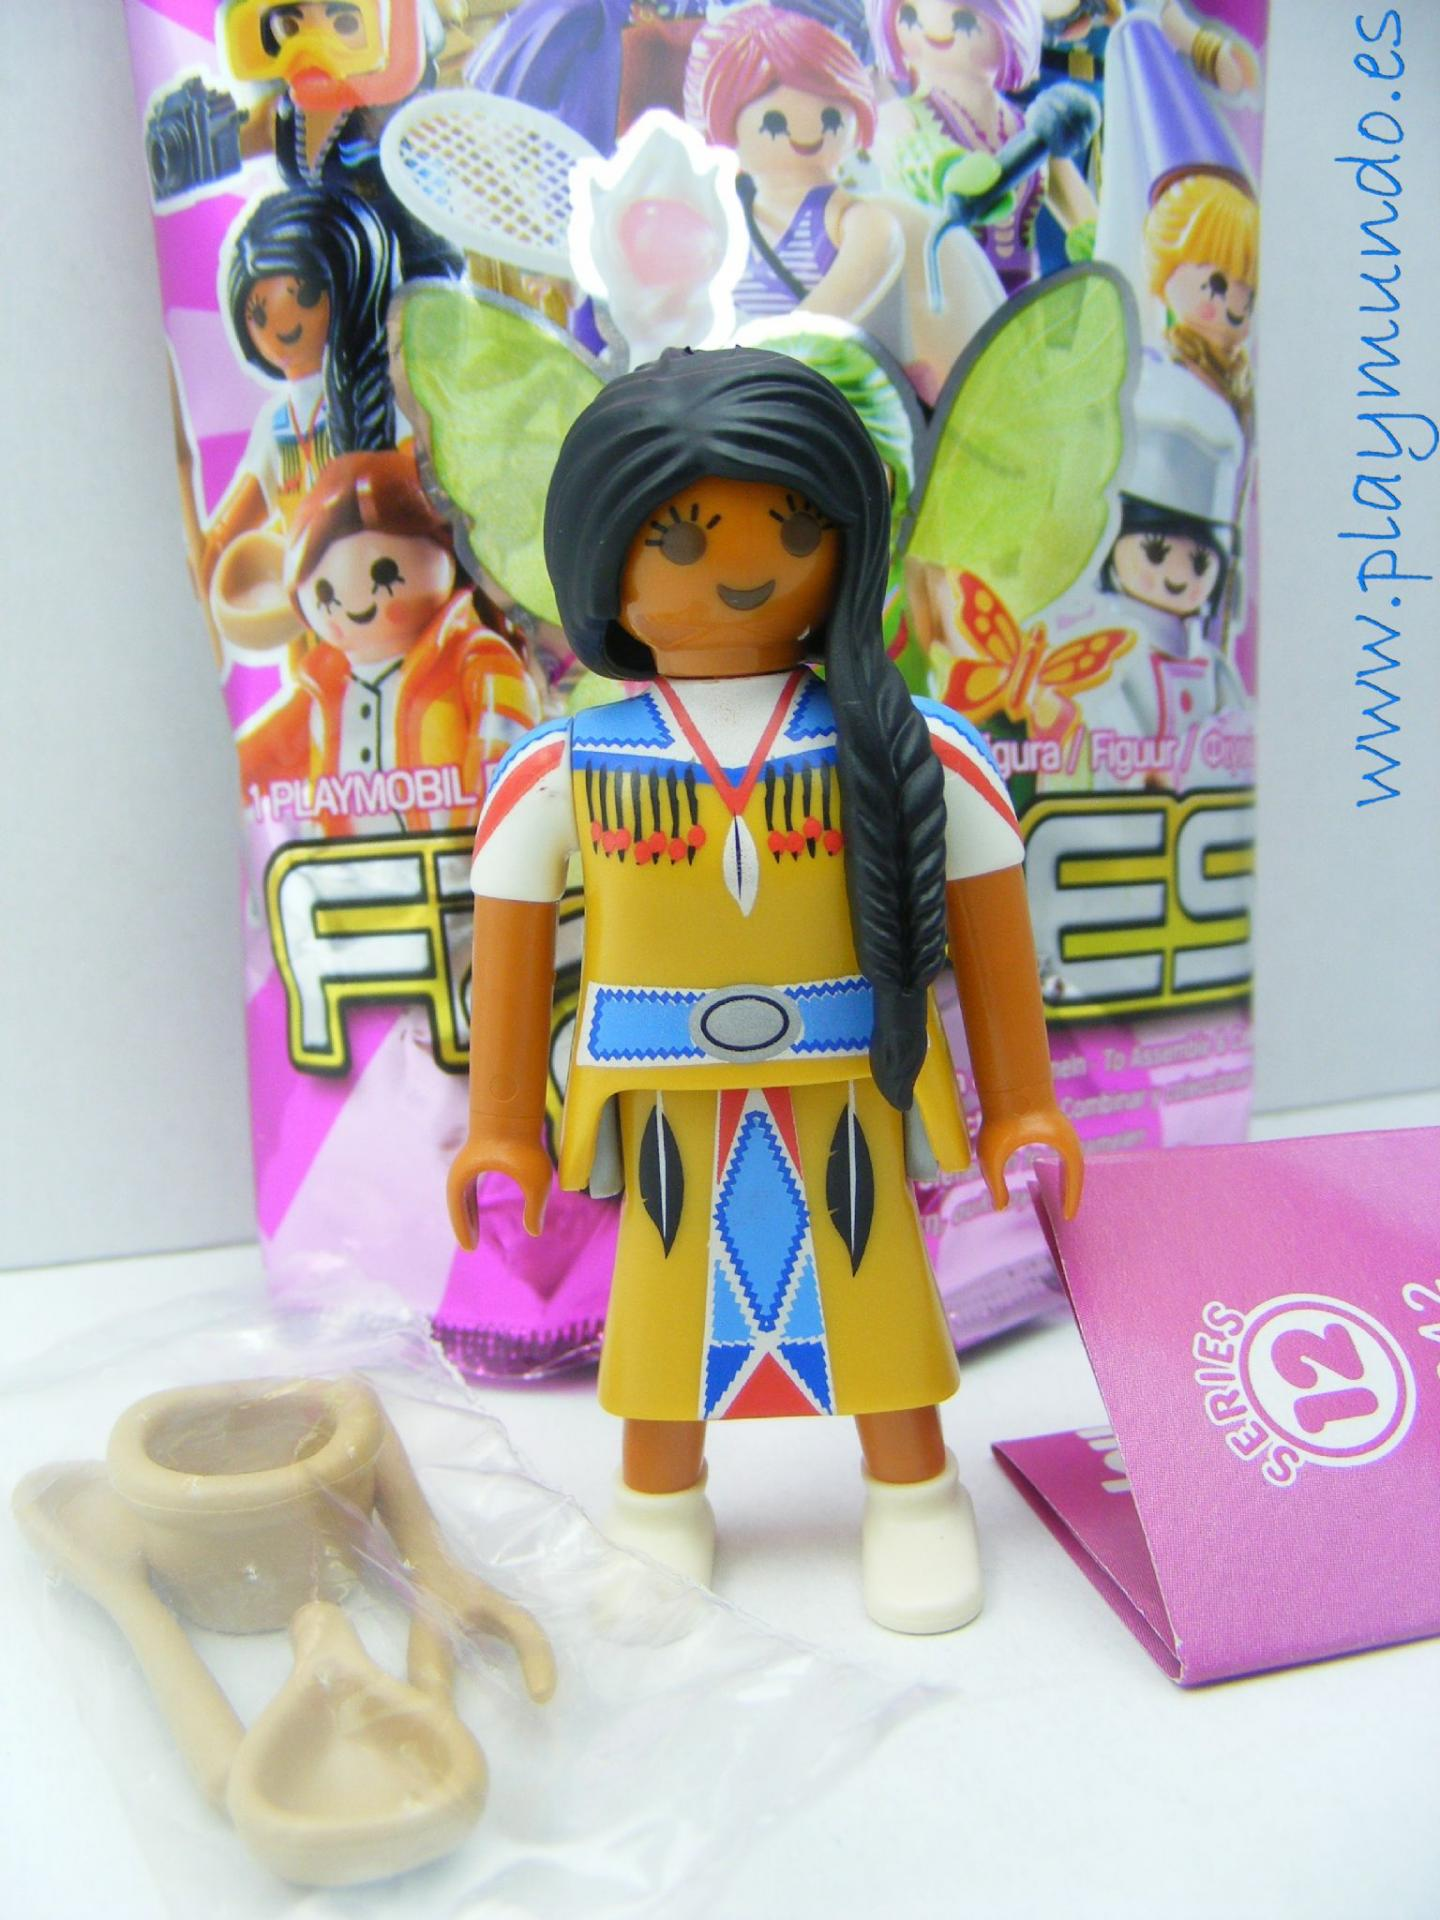 PLAYMOBIL SERIE 12 CHICAS MUJER INDIA